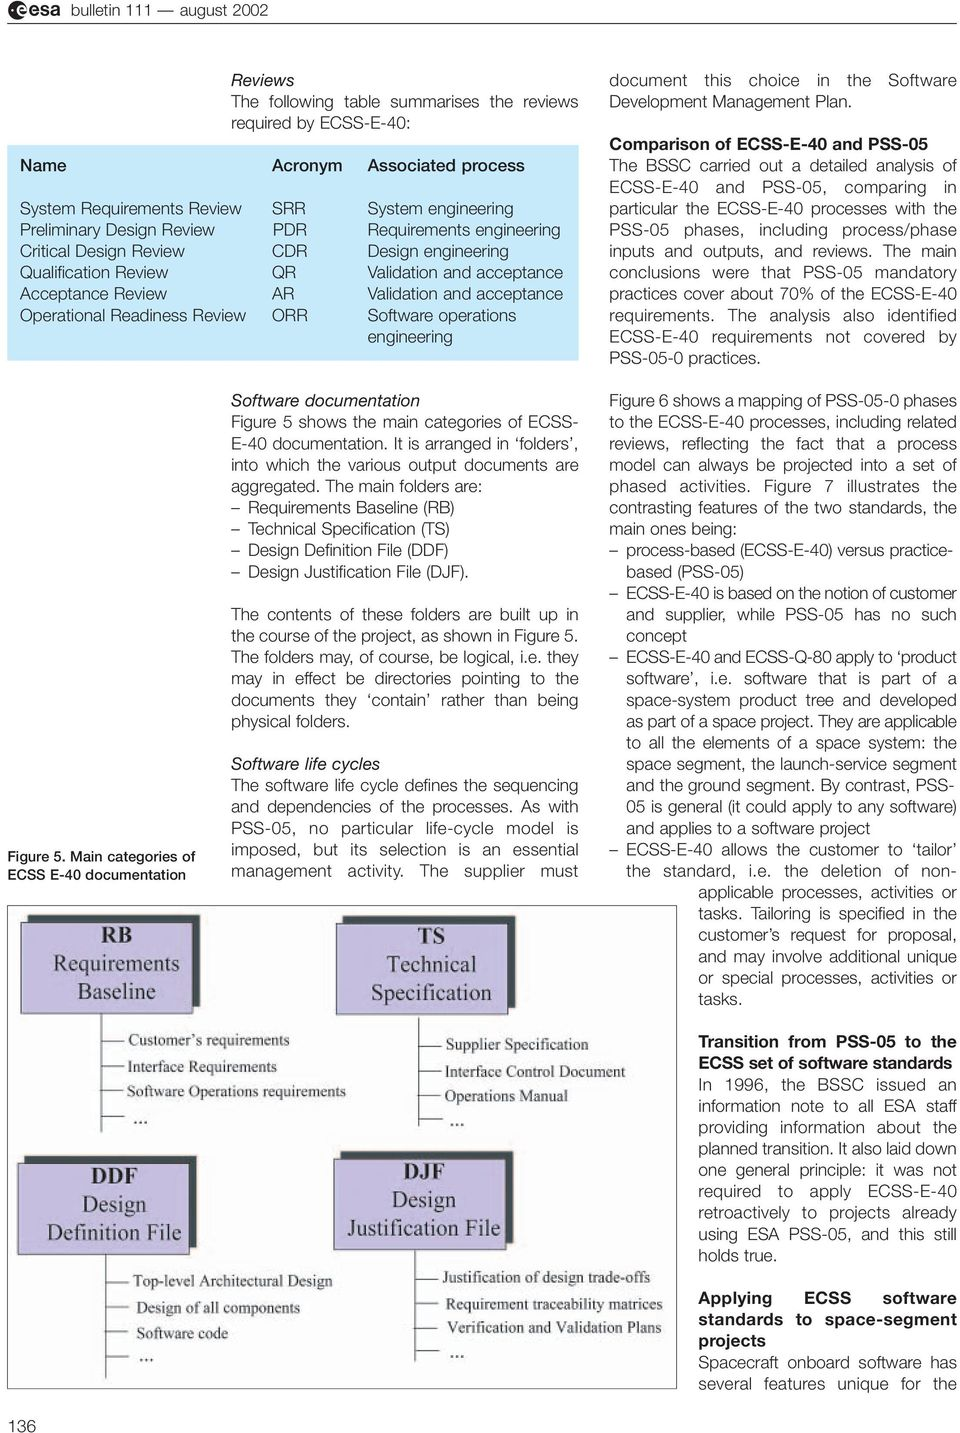 Readiness Review ORR Software operations engineering document this choice in the Software Development Management Plan.